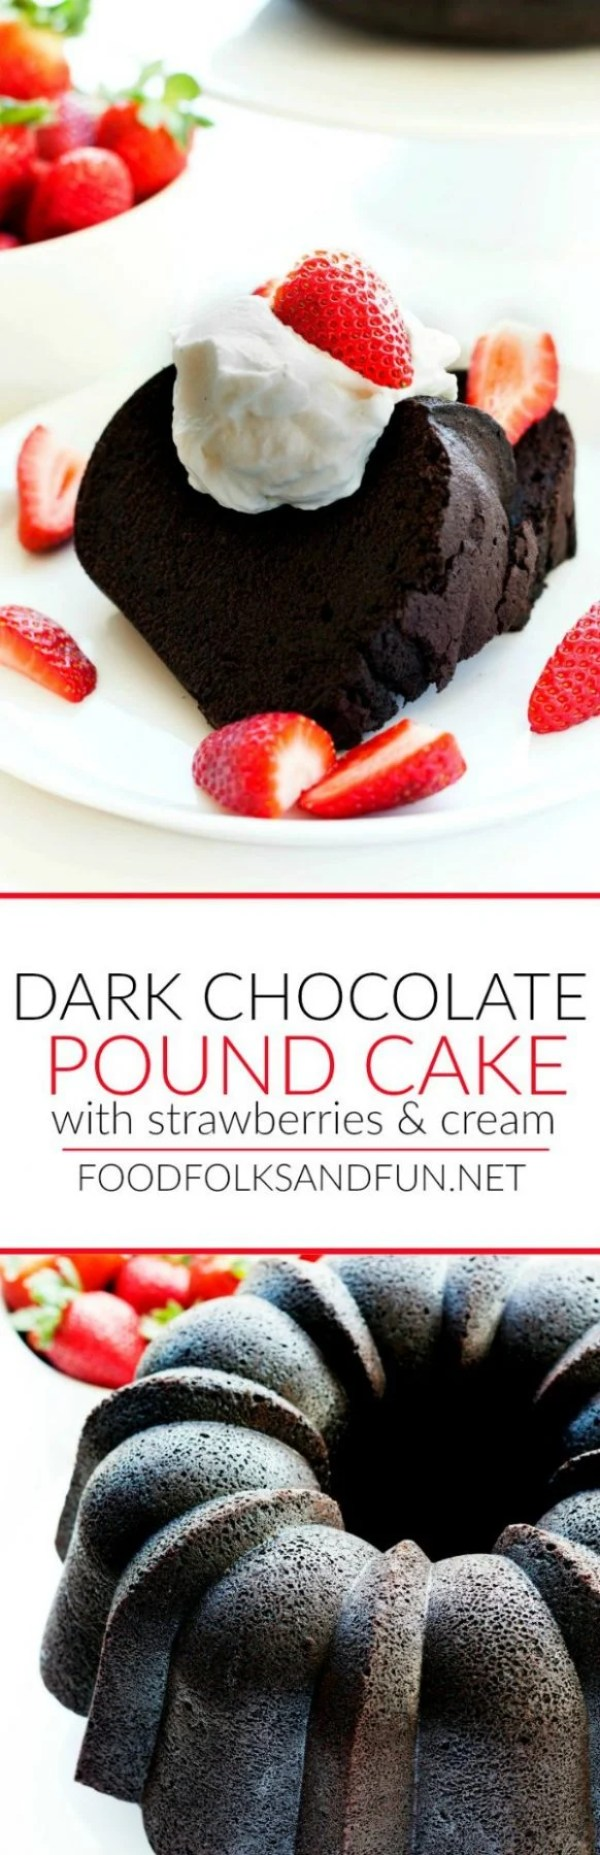 Picture collage of Dark Chocolate Pound Cake for Pinterest.